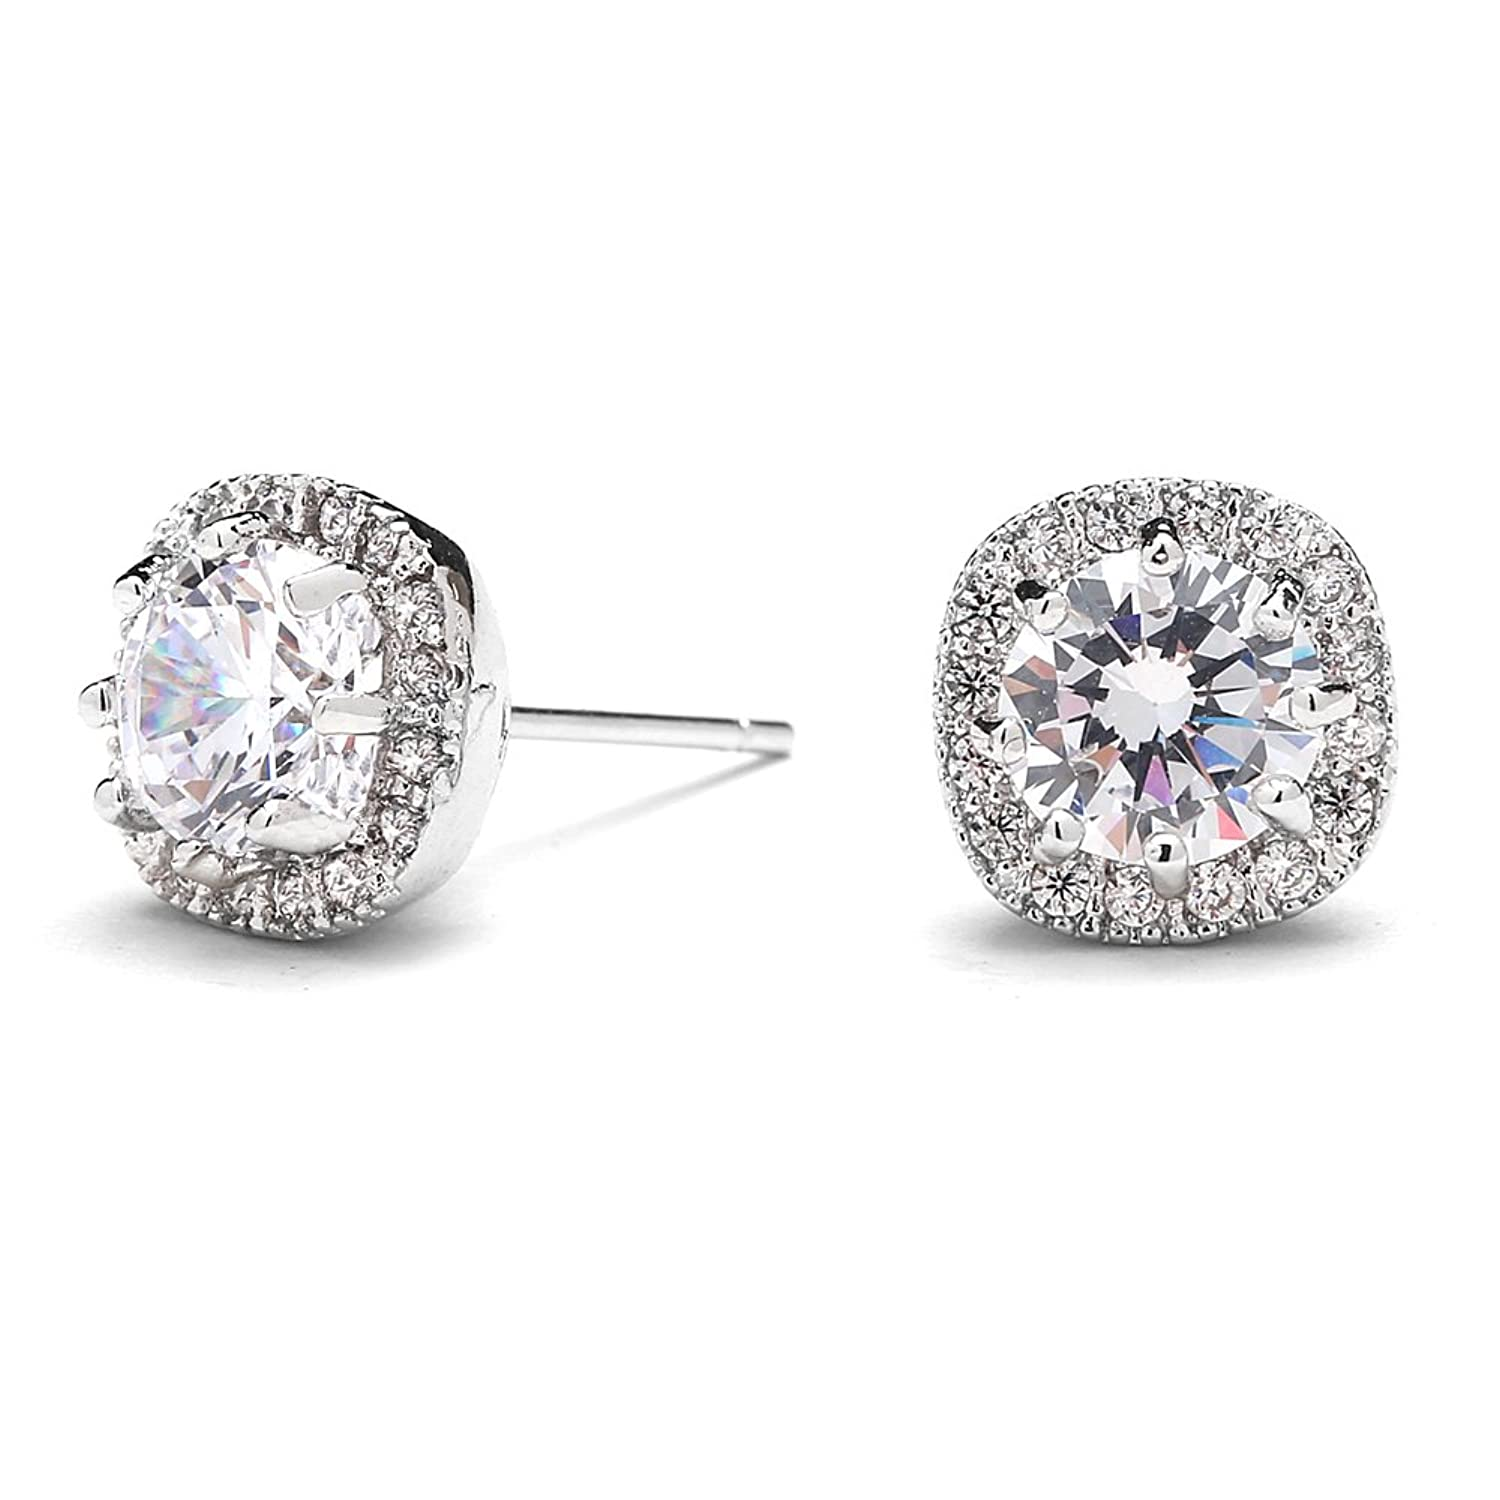 Merdia Cubic Zirconia Earring Studs S925 Sterling Silver 4 Sprong Studs f8xwU